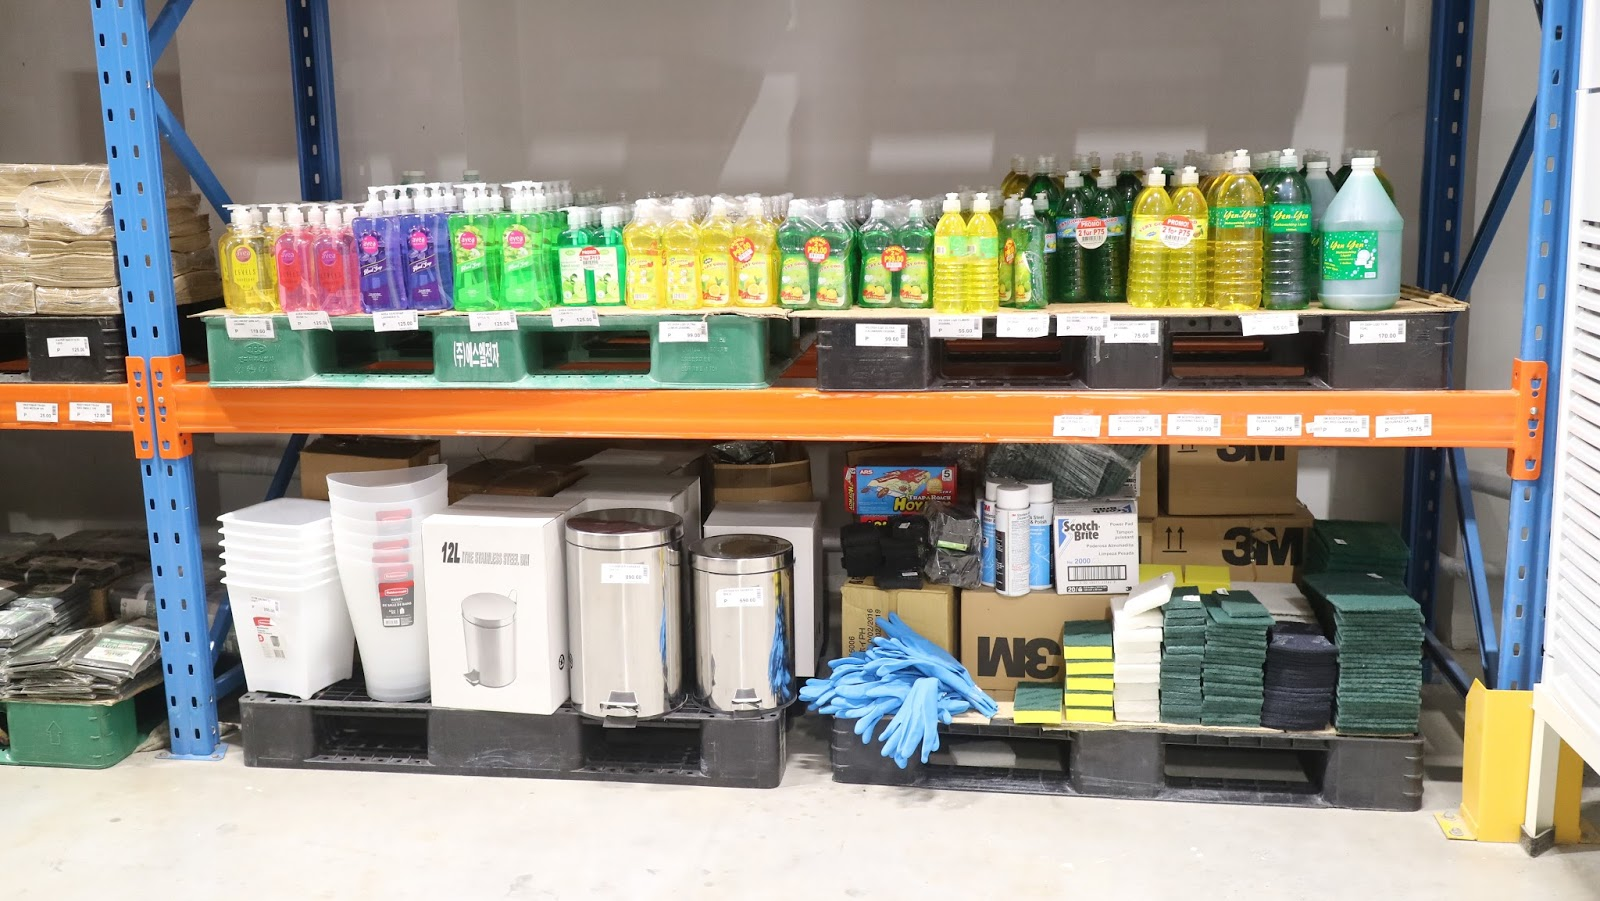 CLEANING U2013 From Scrubs To Sponges And Cleaning Liquids, Restaurant Depot  Has Larger Sizes In Order To Optimize Your Cleaning Budget.